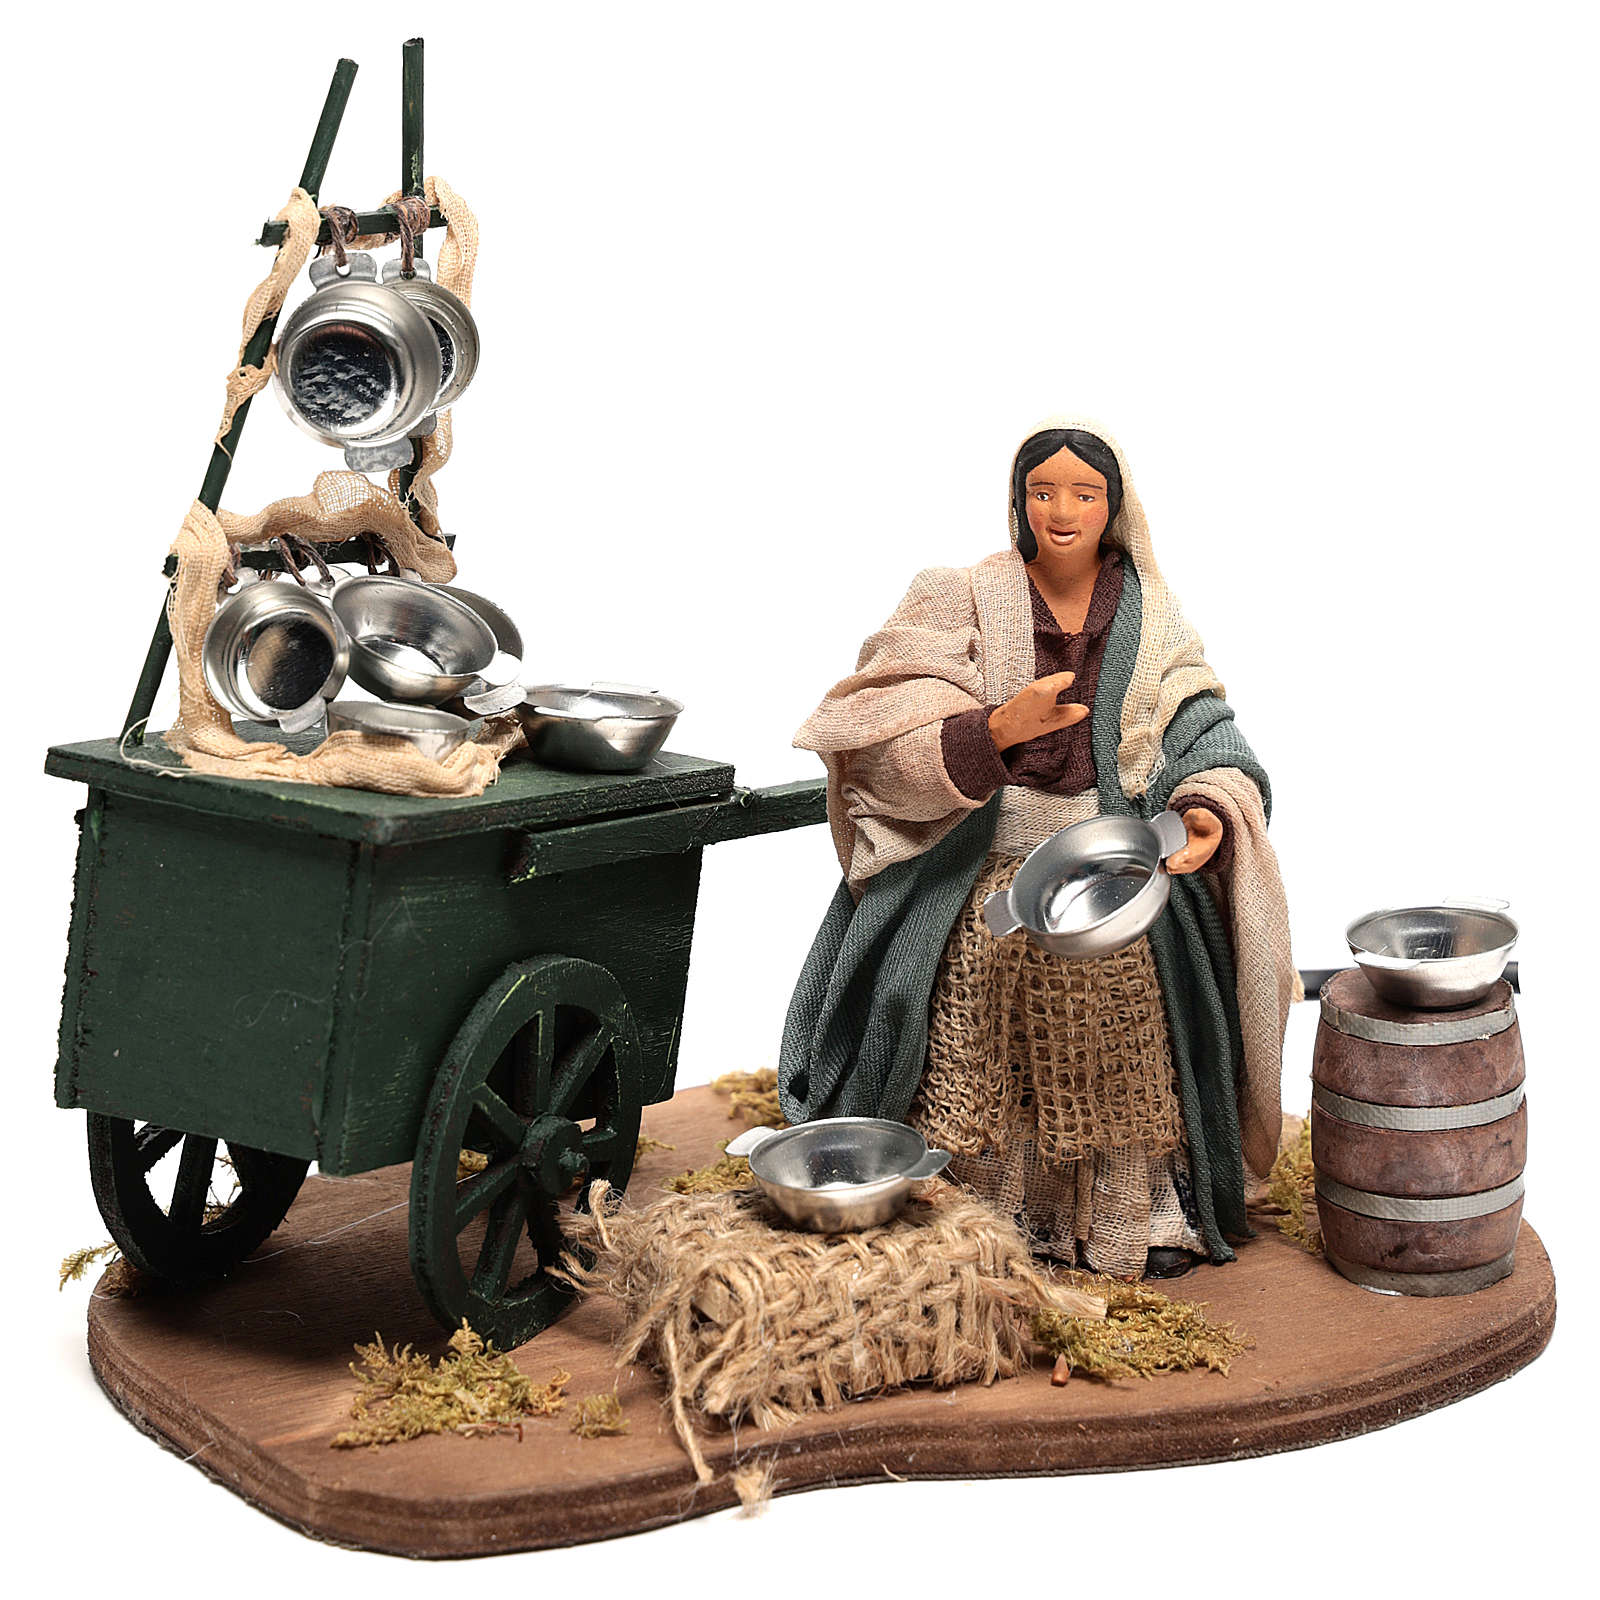 Animated pot seller with cart 18x19x10 cm, for 10 cm Neapolitan nativity 4